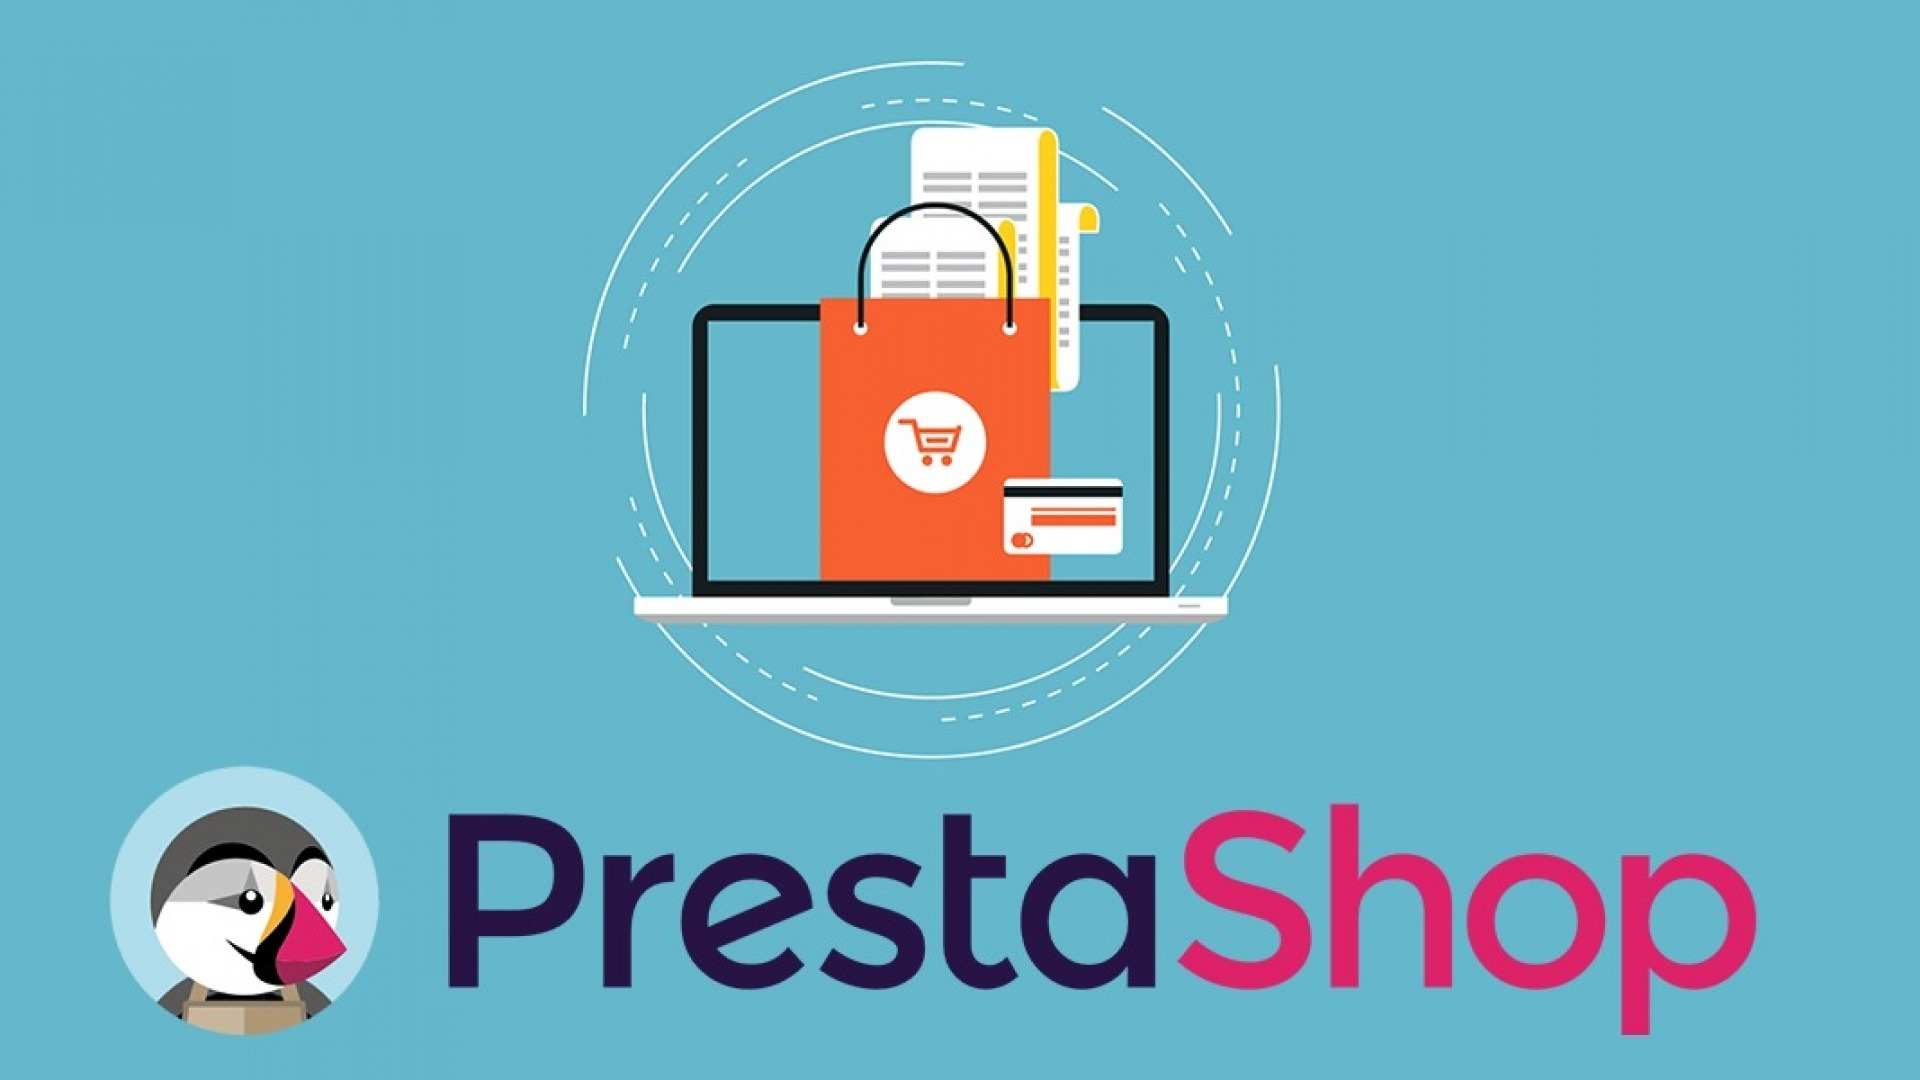 immagine blog E-commerce: la piattaforma di PrestaShop